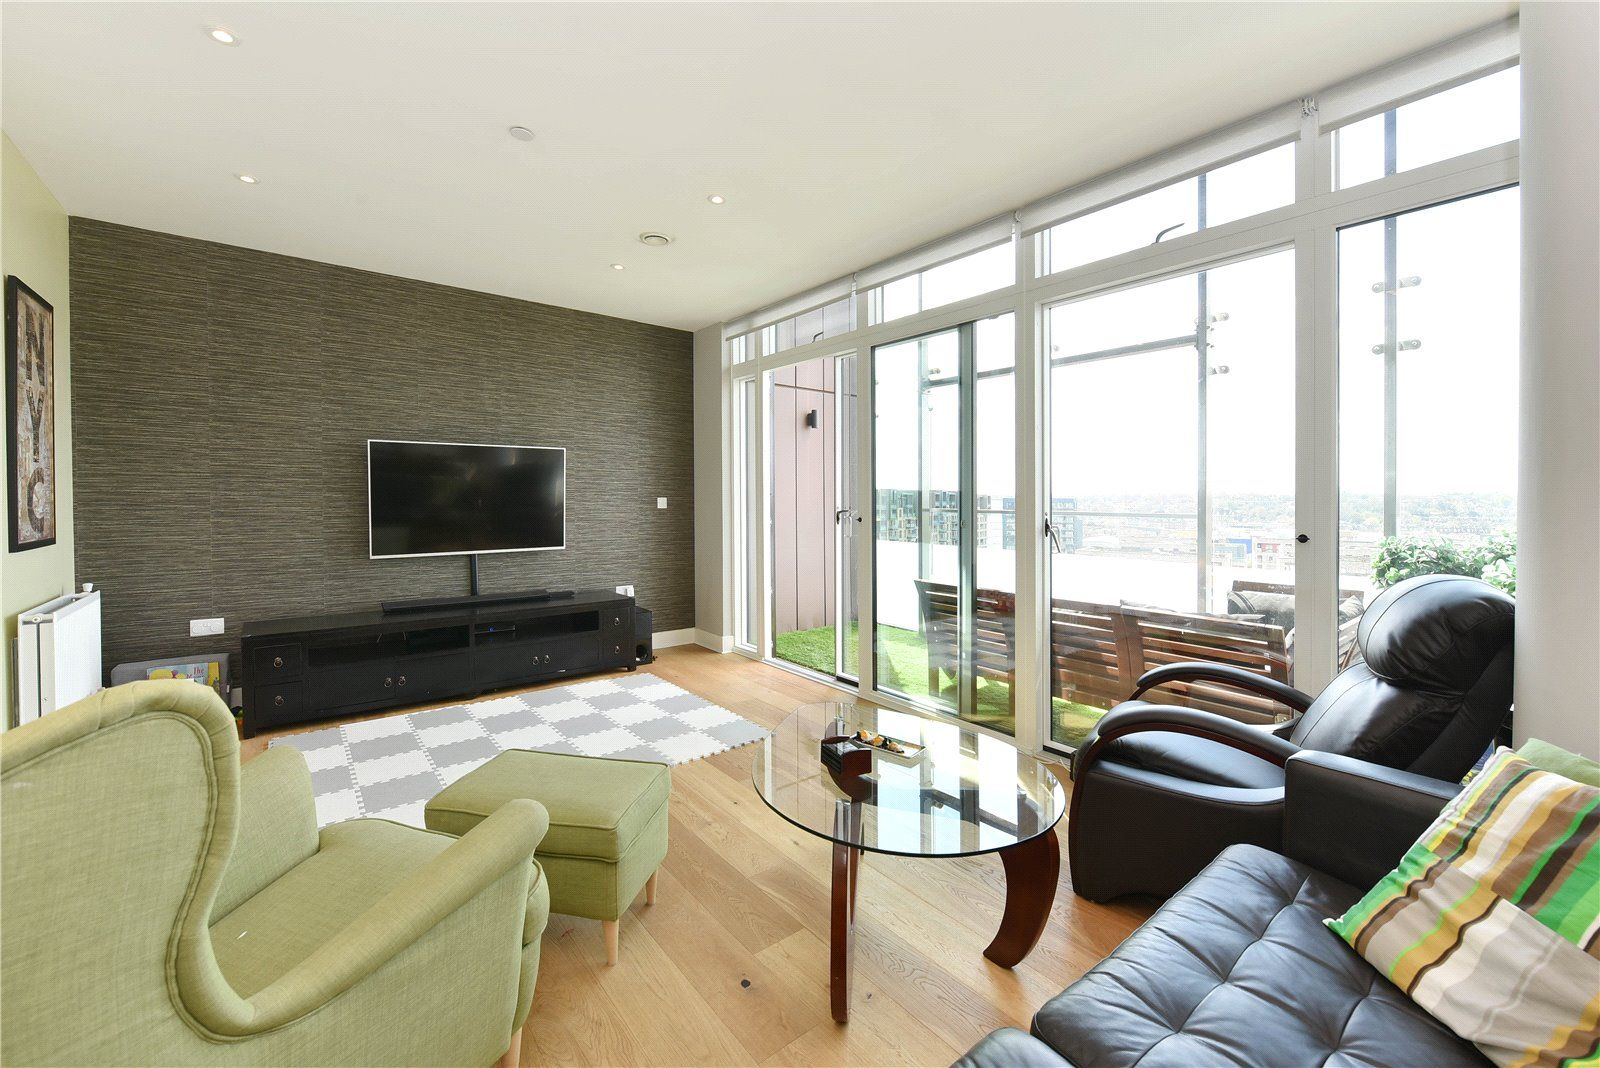 Property photo 1 of 15. Reception Room